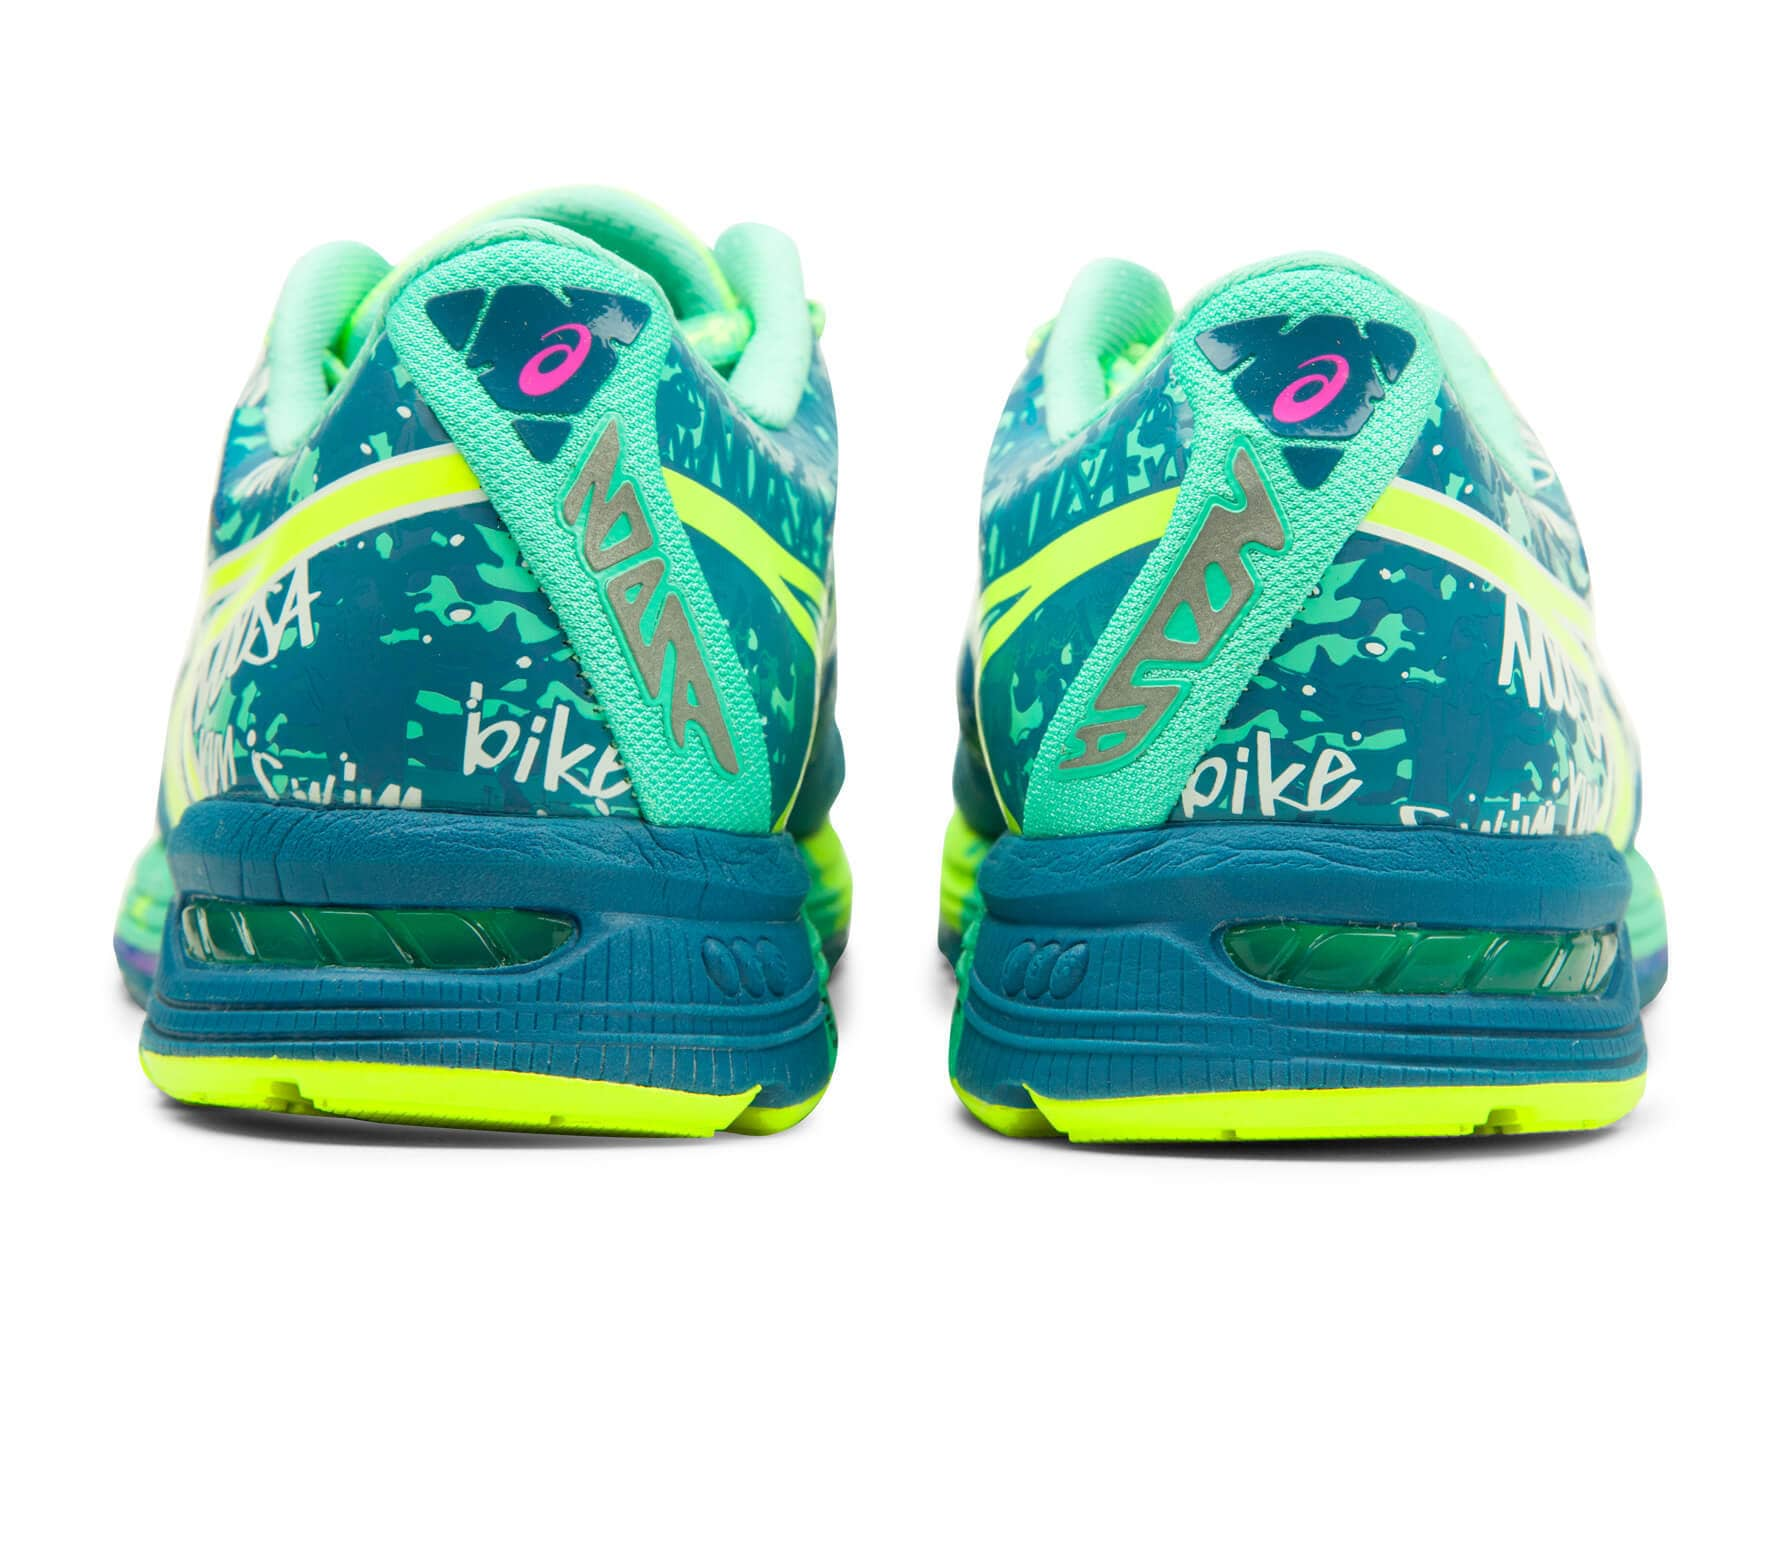 asics gel noosa tri 10 chaussures de running femmes. Black Bedroom Furniture Sets. Home Design Ideas